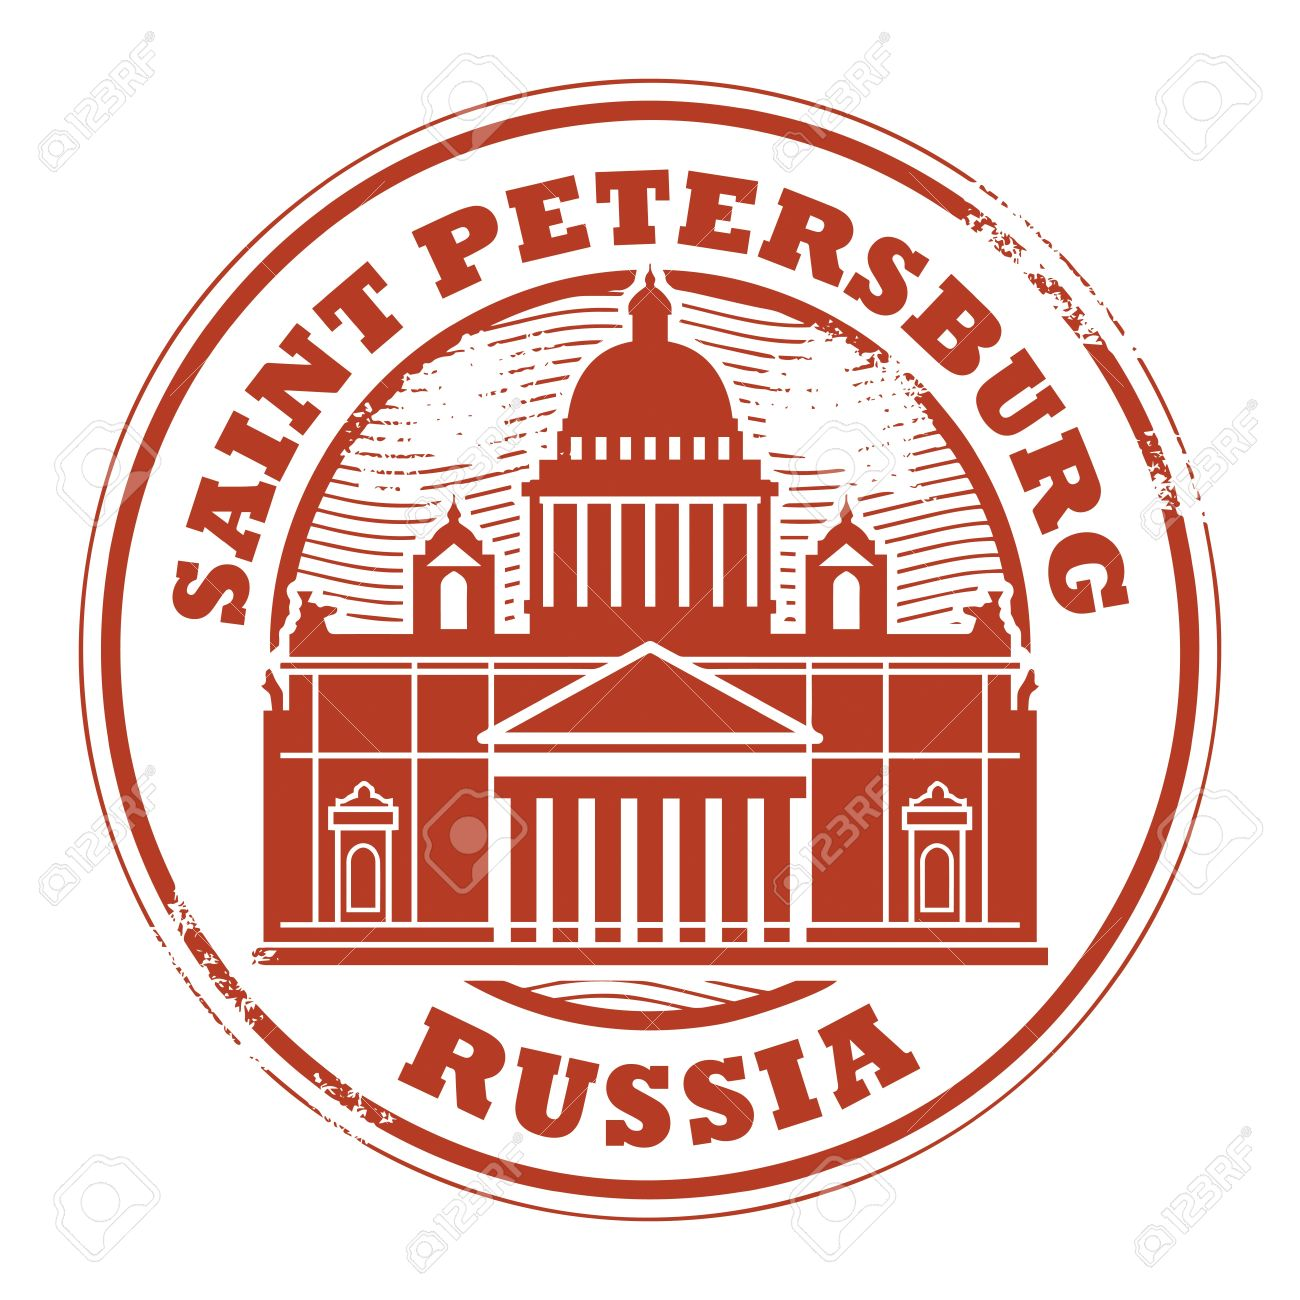 Petersburg clipart.